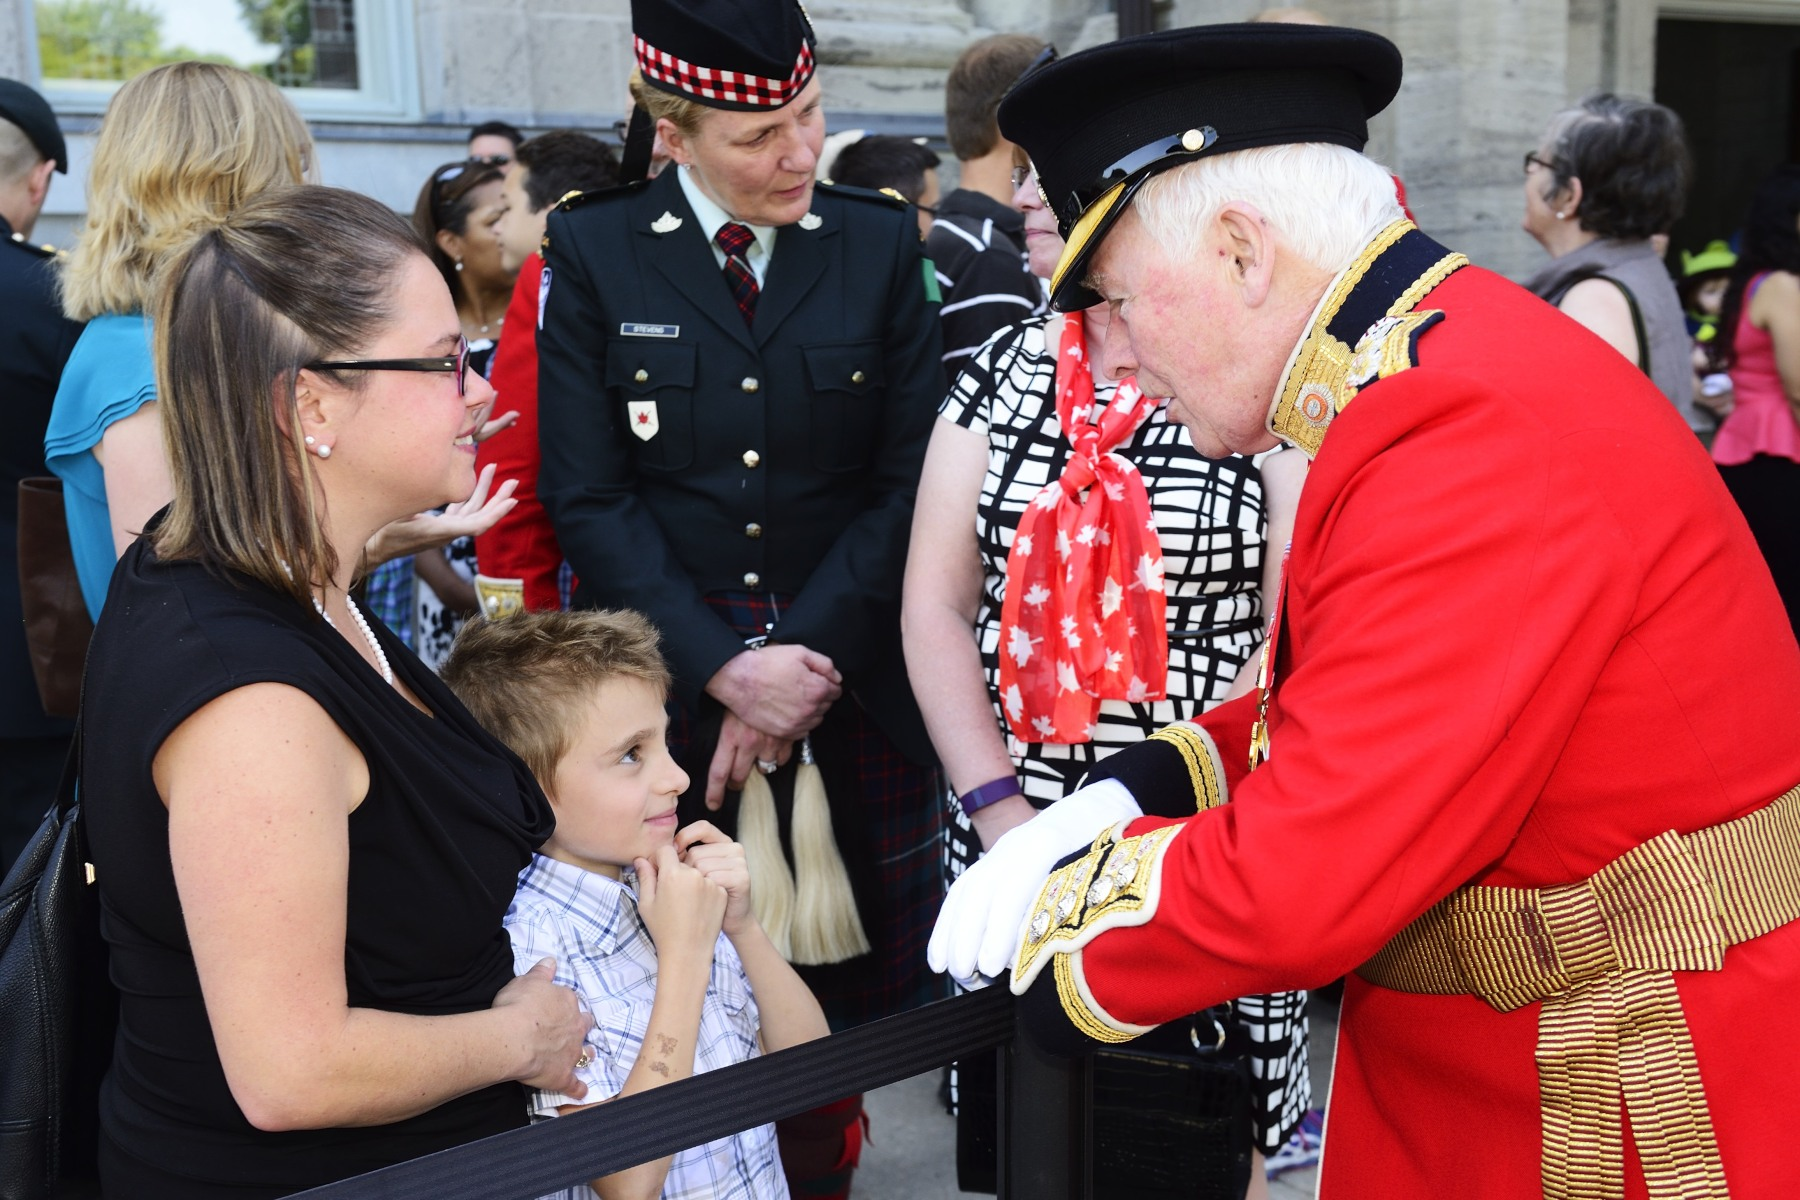 The Governor General took a moment to talk with family members who attended the event.